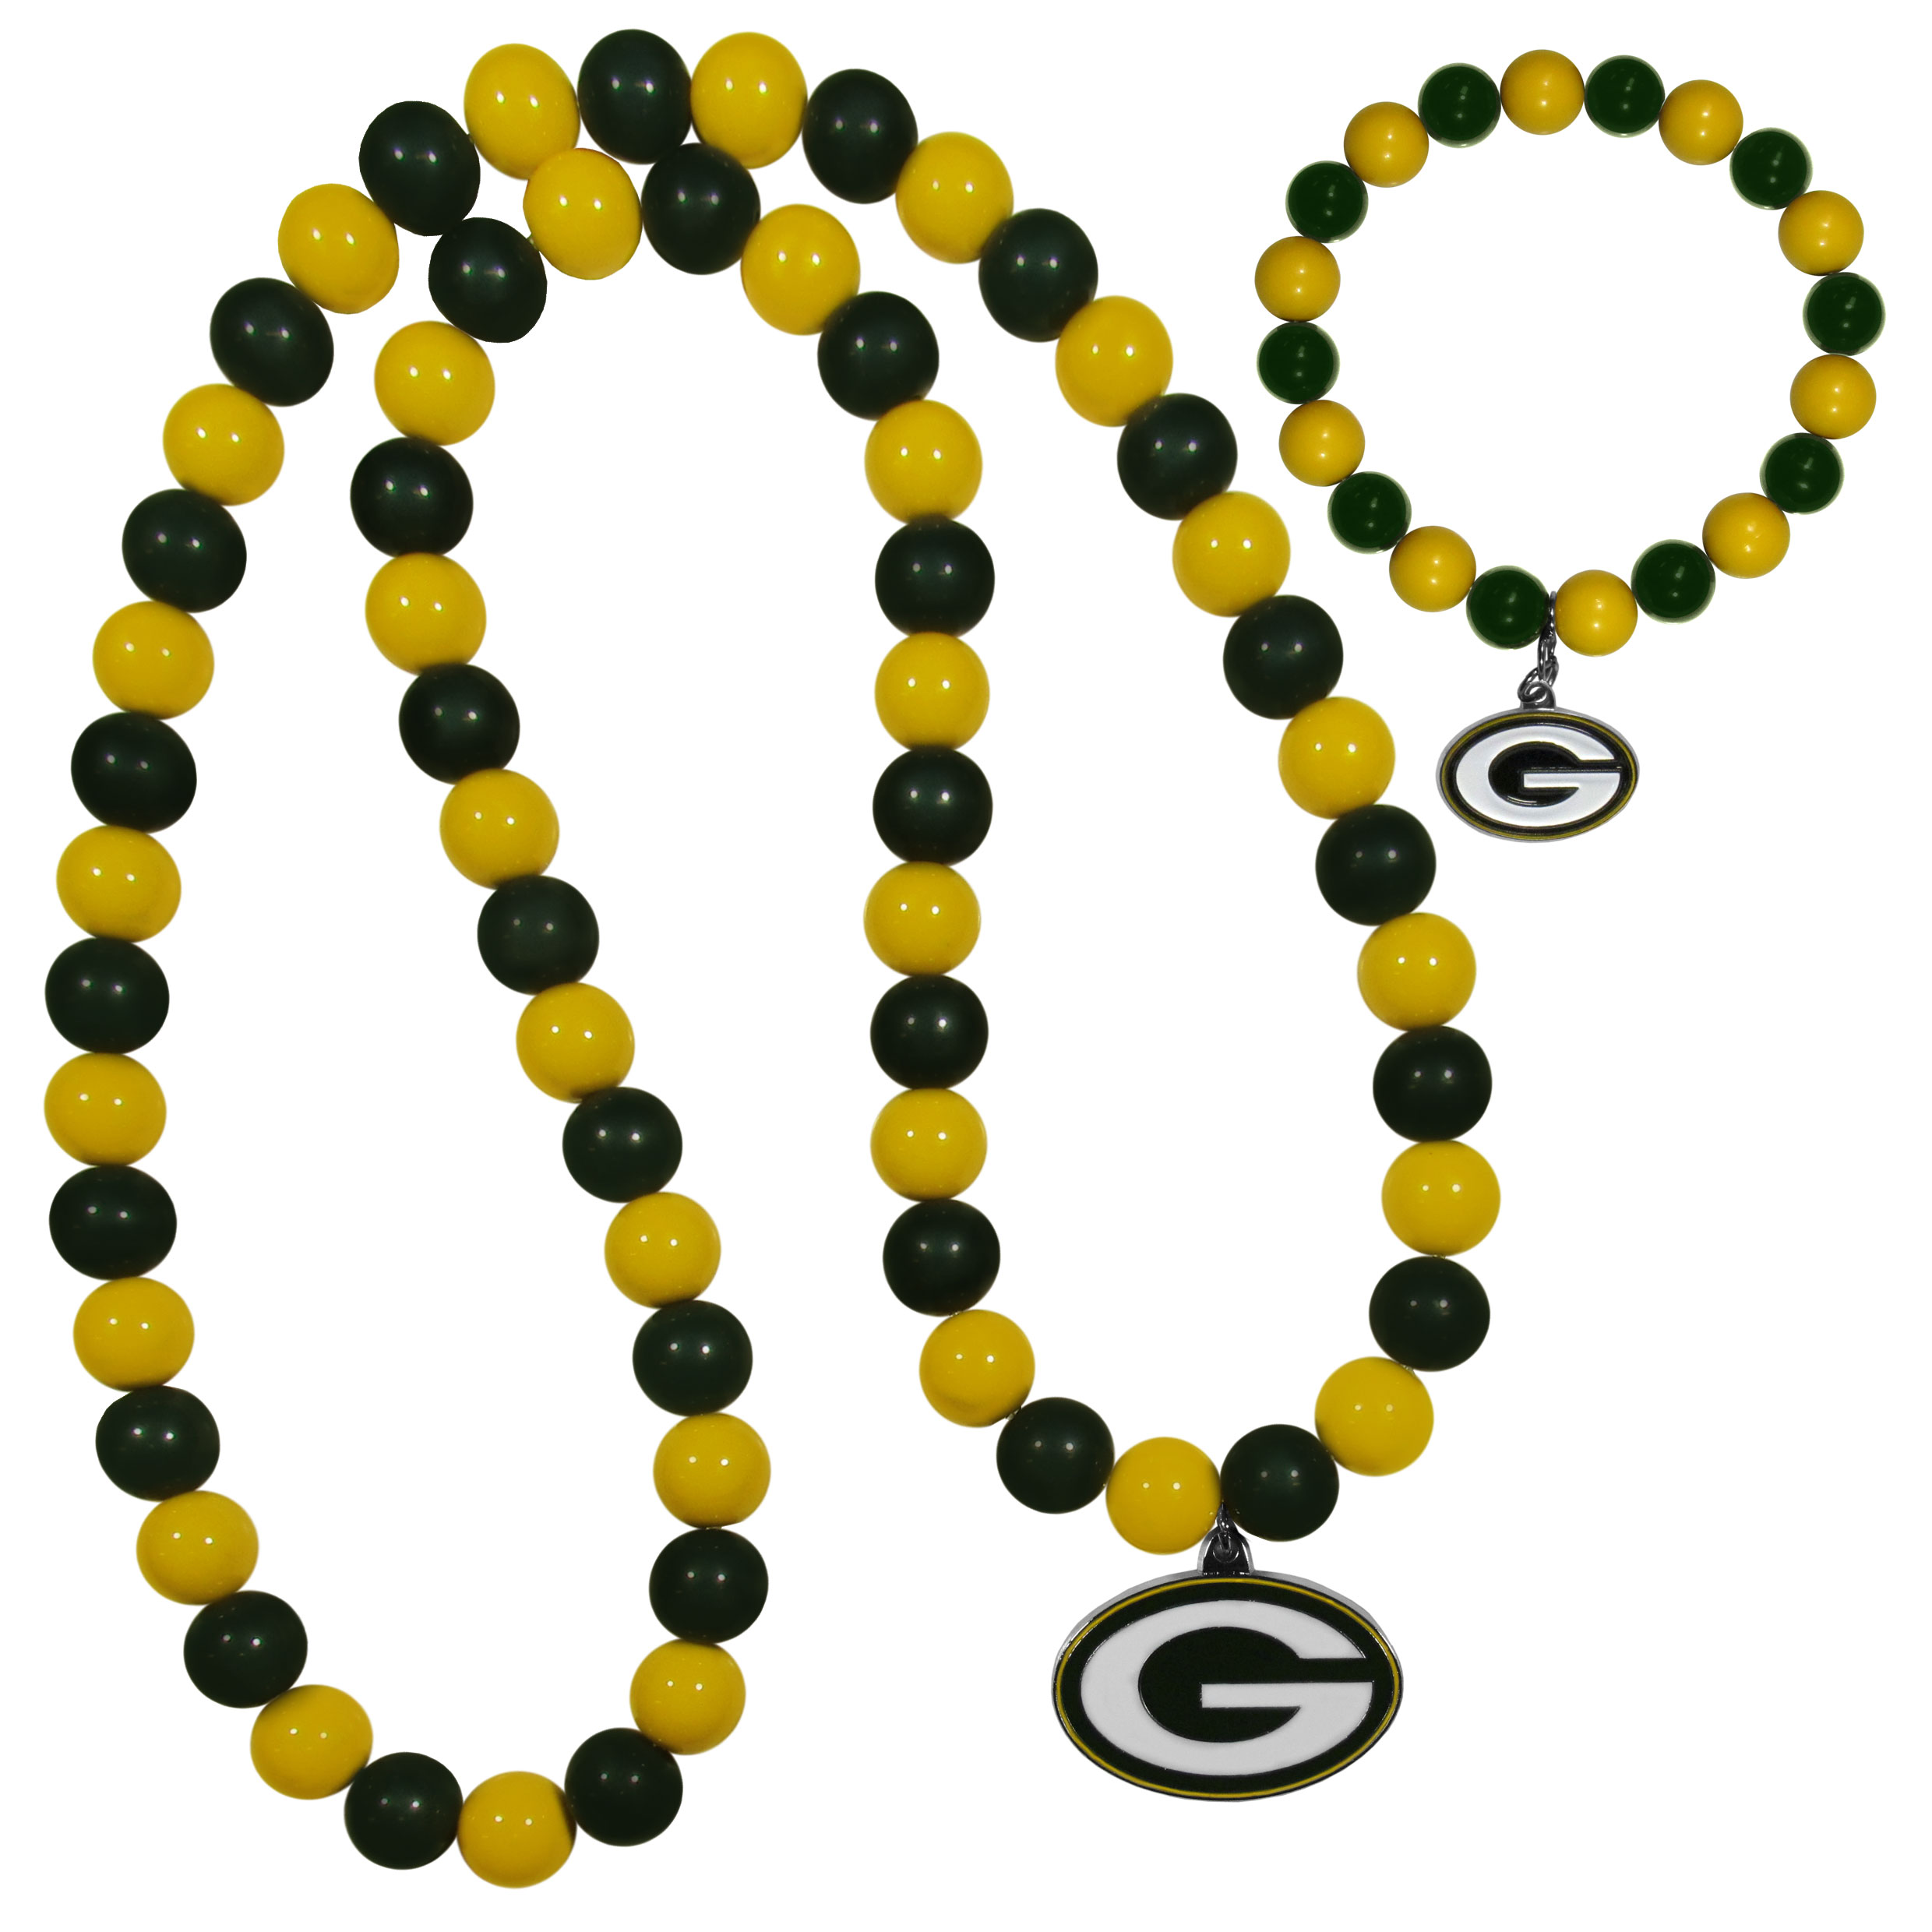 Green Bay Packers Fan Bead Necklace and Bracelet Set - These fun and colorful Green Bay Packers fan bead jewelry pieces are an eyecatching way to show off your team spirit. The striking necklace is a 24 inch string of alternating team colored beads with a large team pendant. The mathcing bracelet has alternating team colored beads on a stretch cord and features a matching team charm.